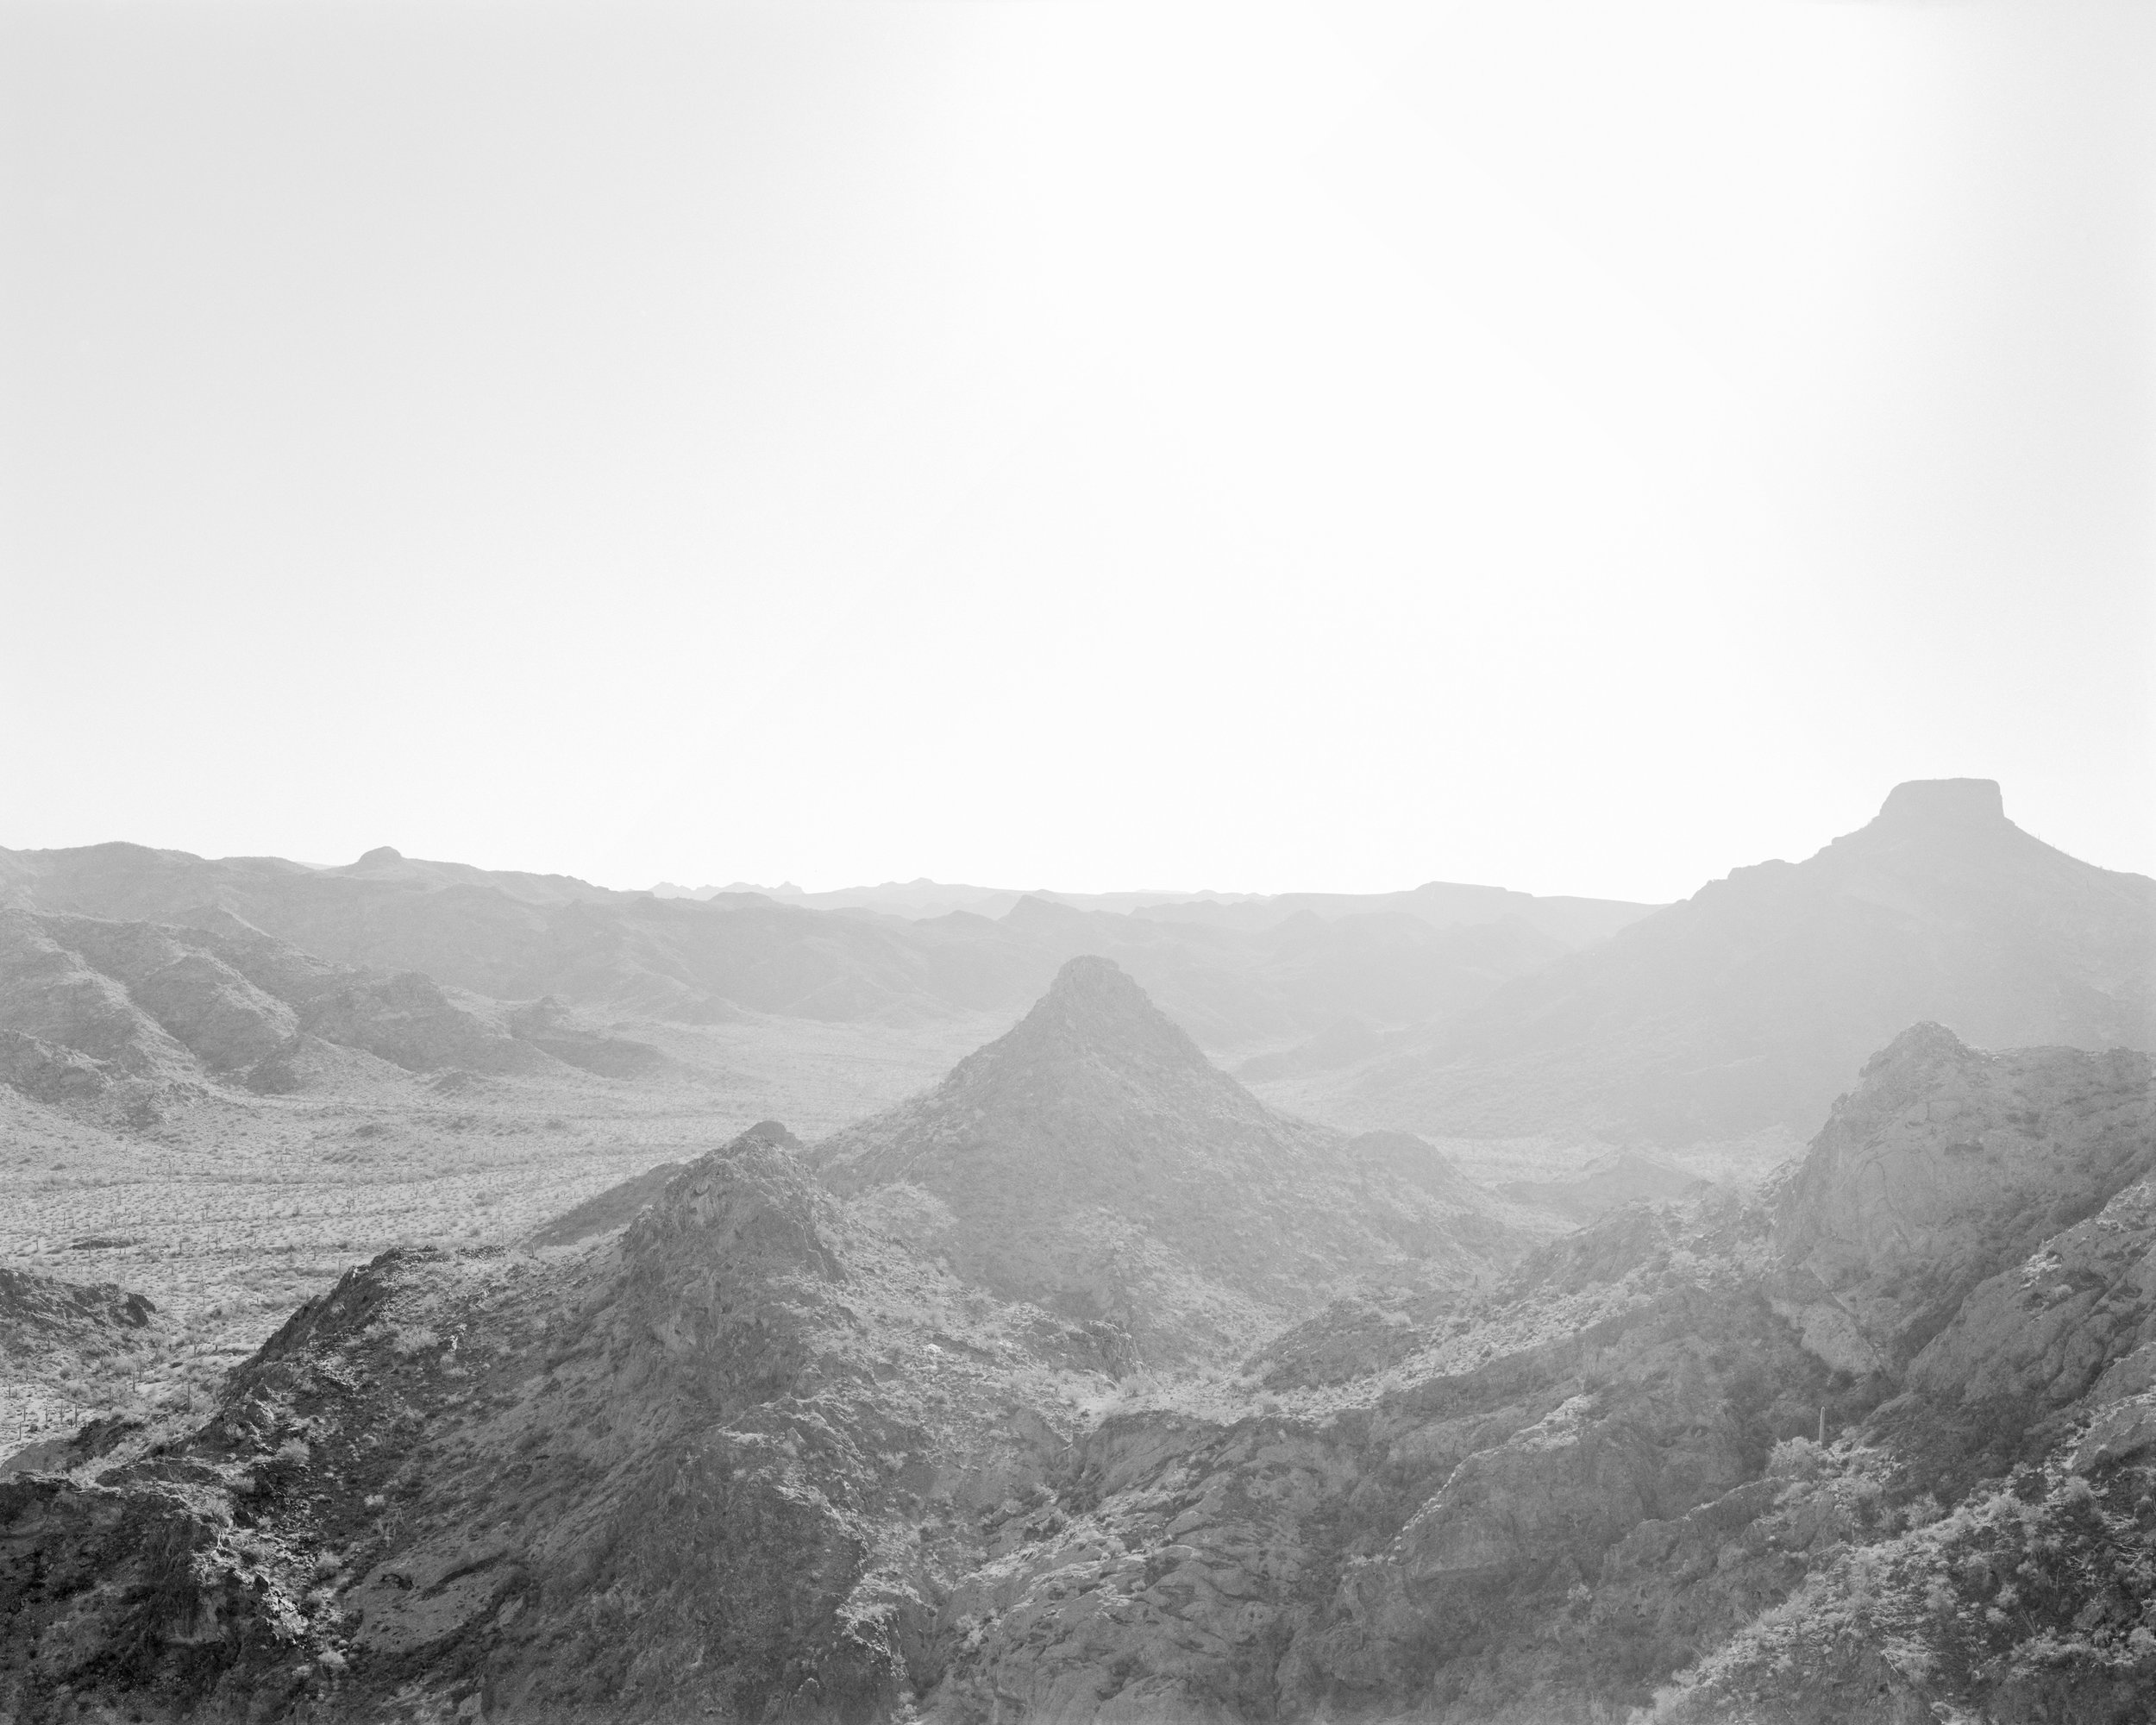 MICHAEL LUNDGREN  Untitled, 2004  Gelatin Silver Print  Available sizes 20 x 24 in, ed. 10 + 2AP 32 x 40 in, ed. 3 + 1AP